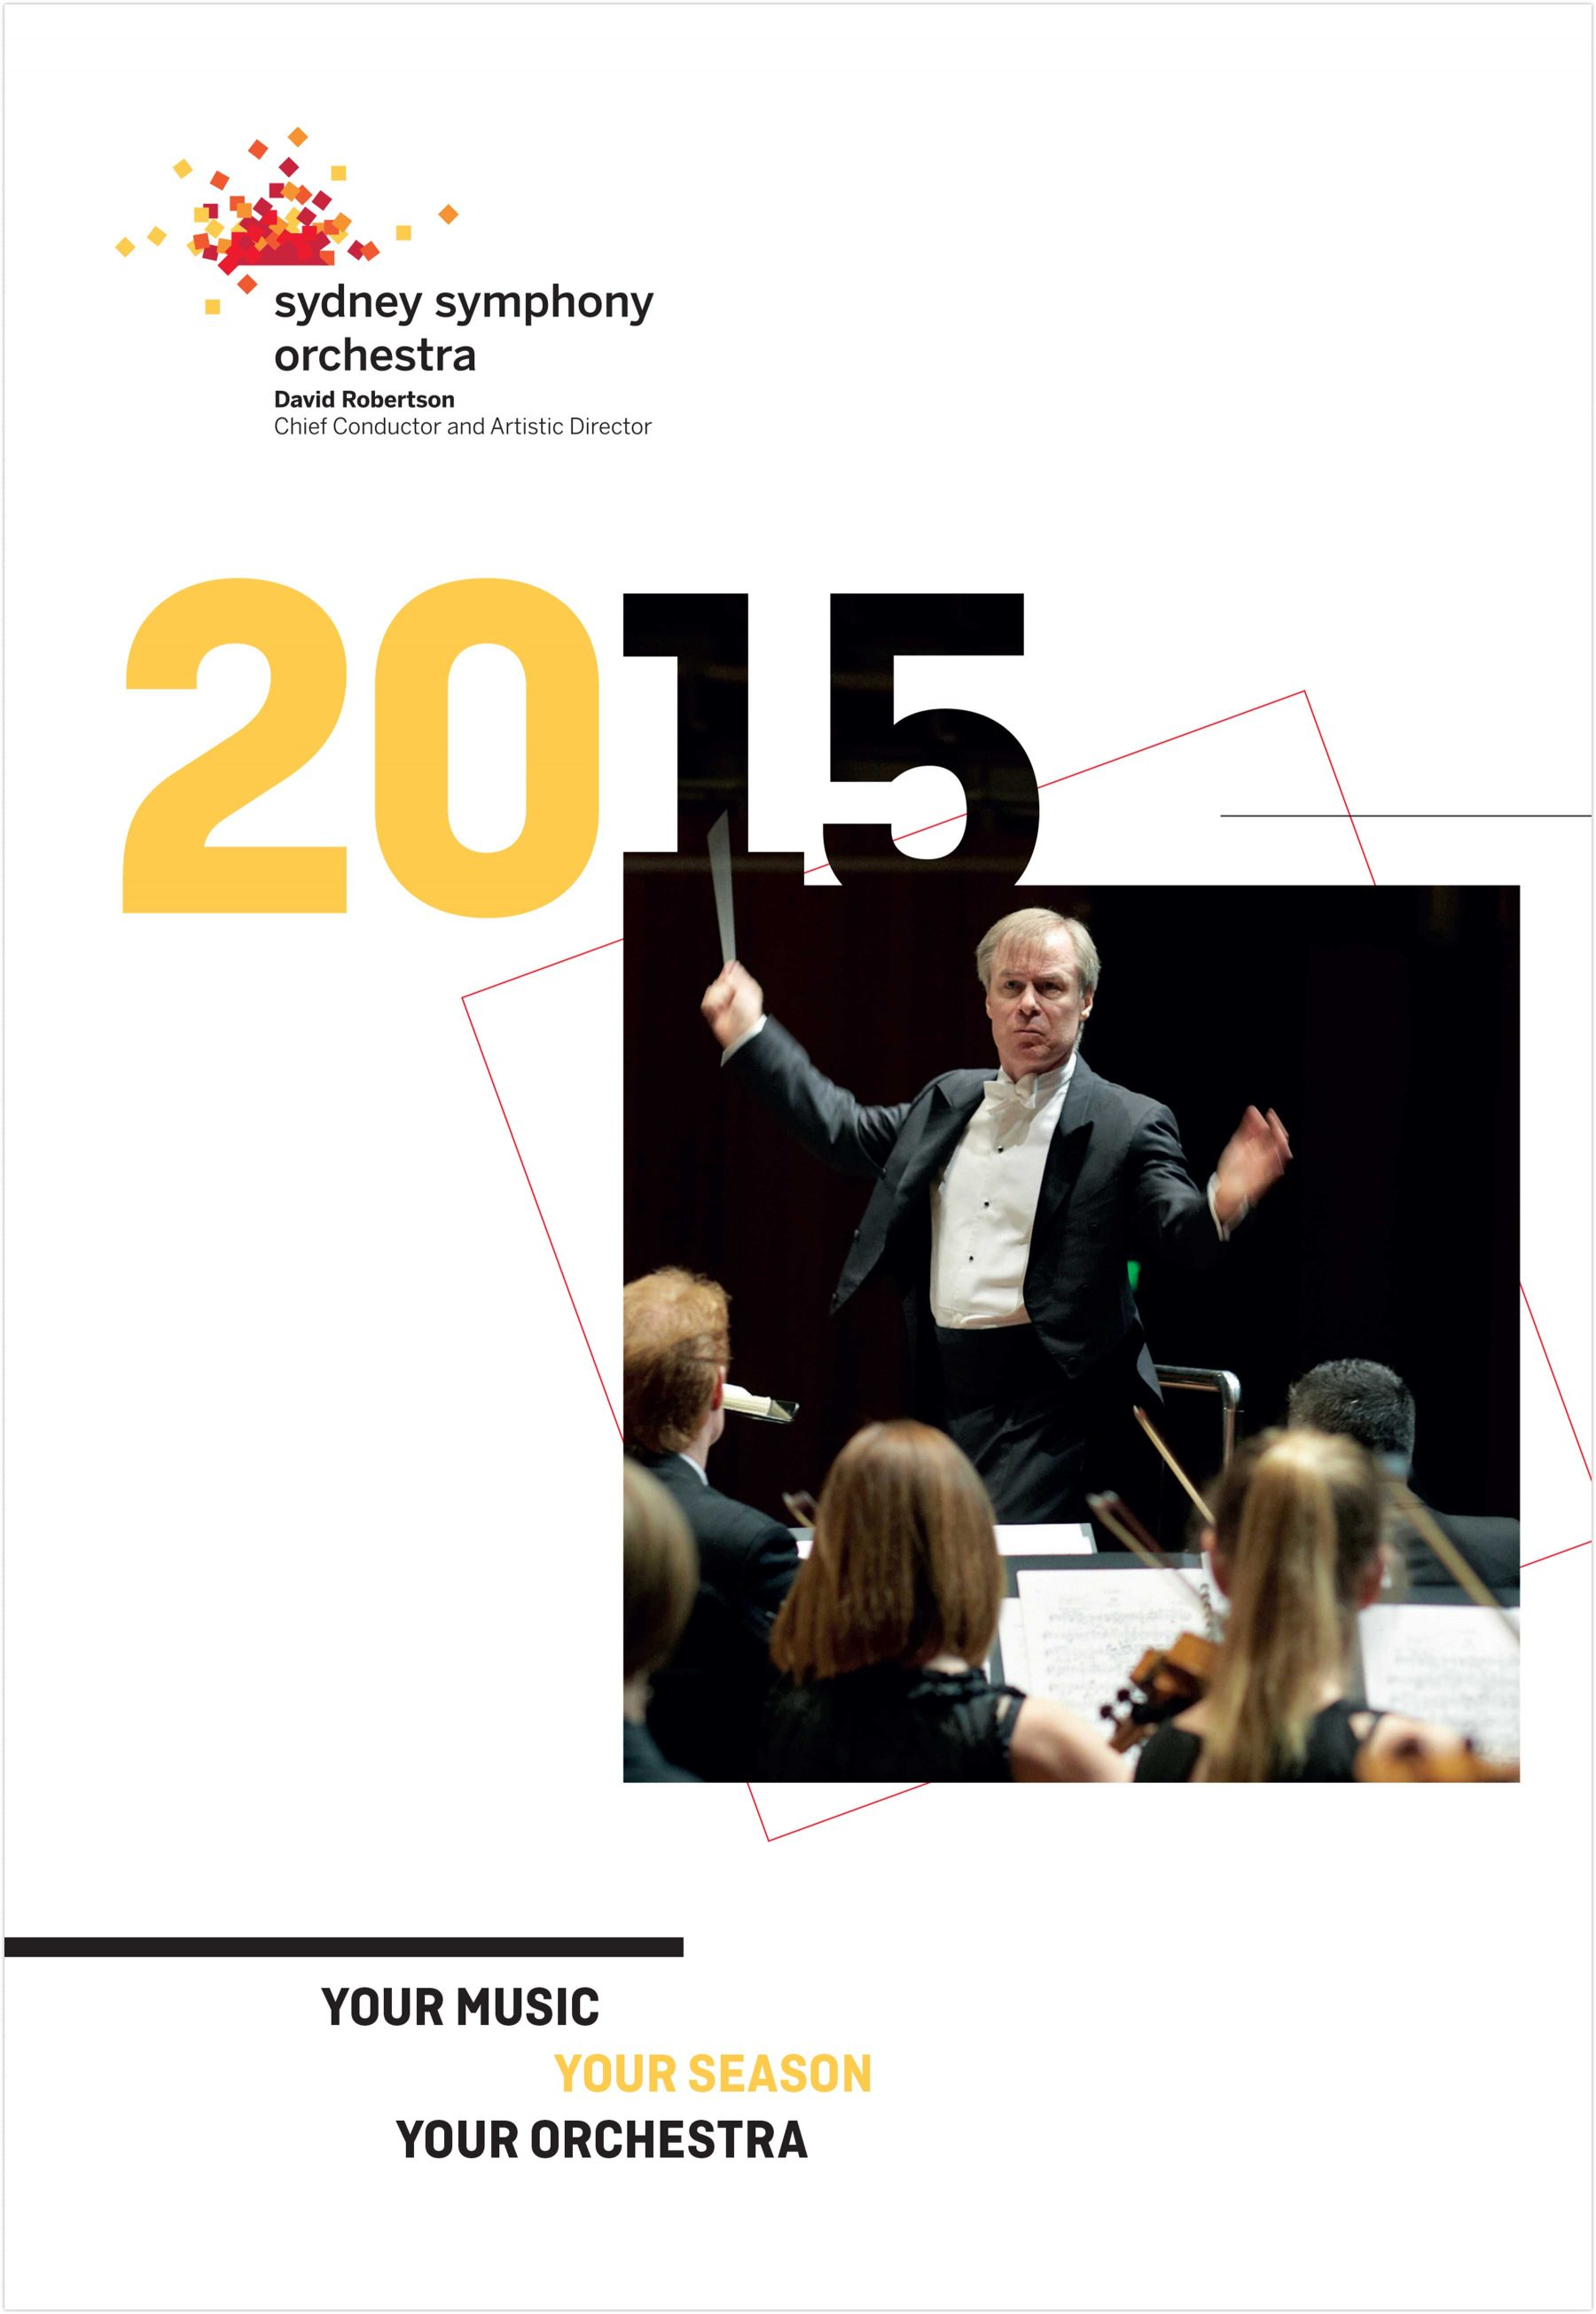 Your Season 2015 brochure